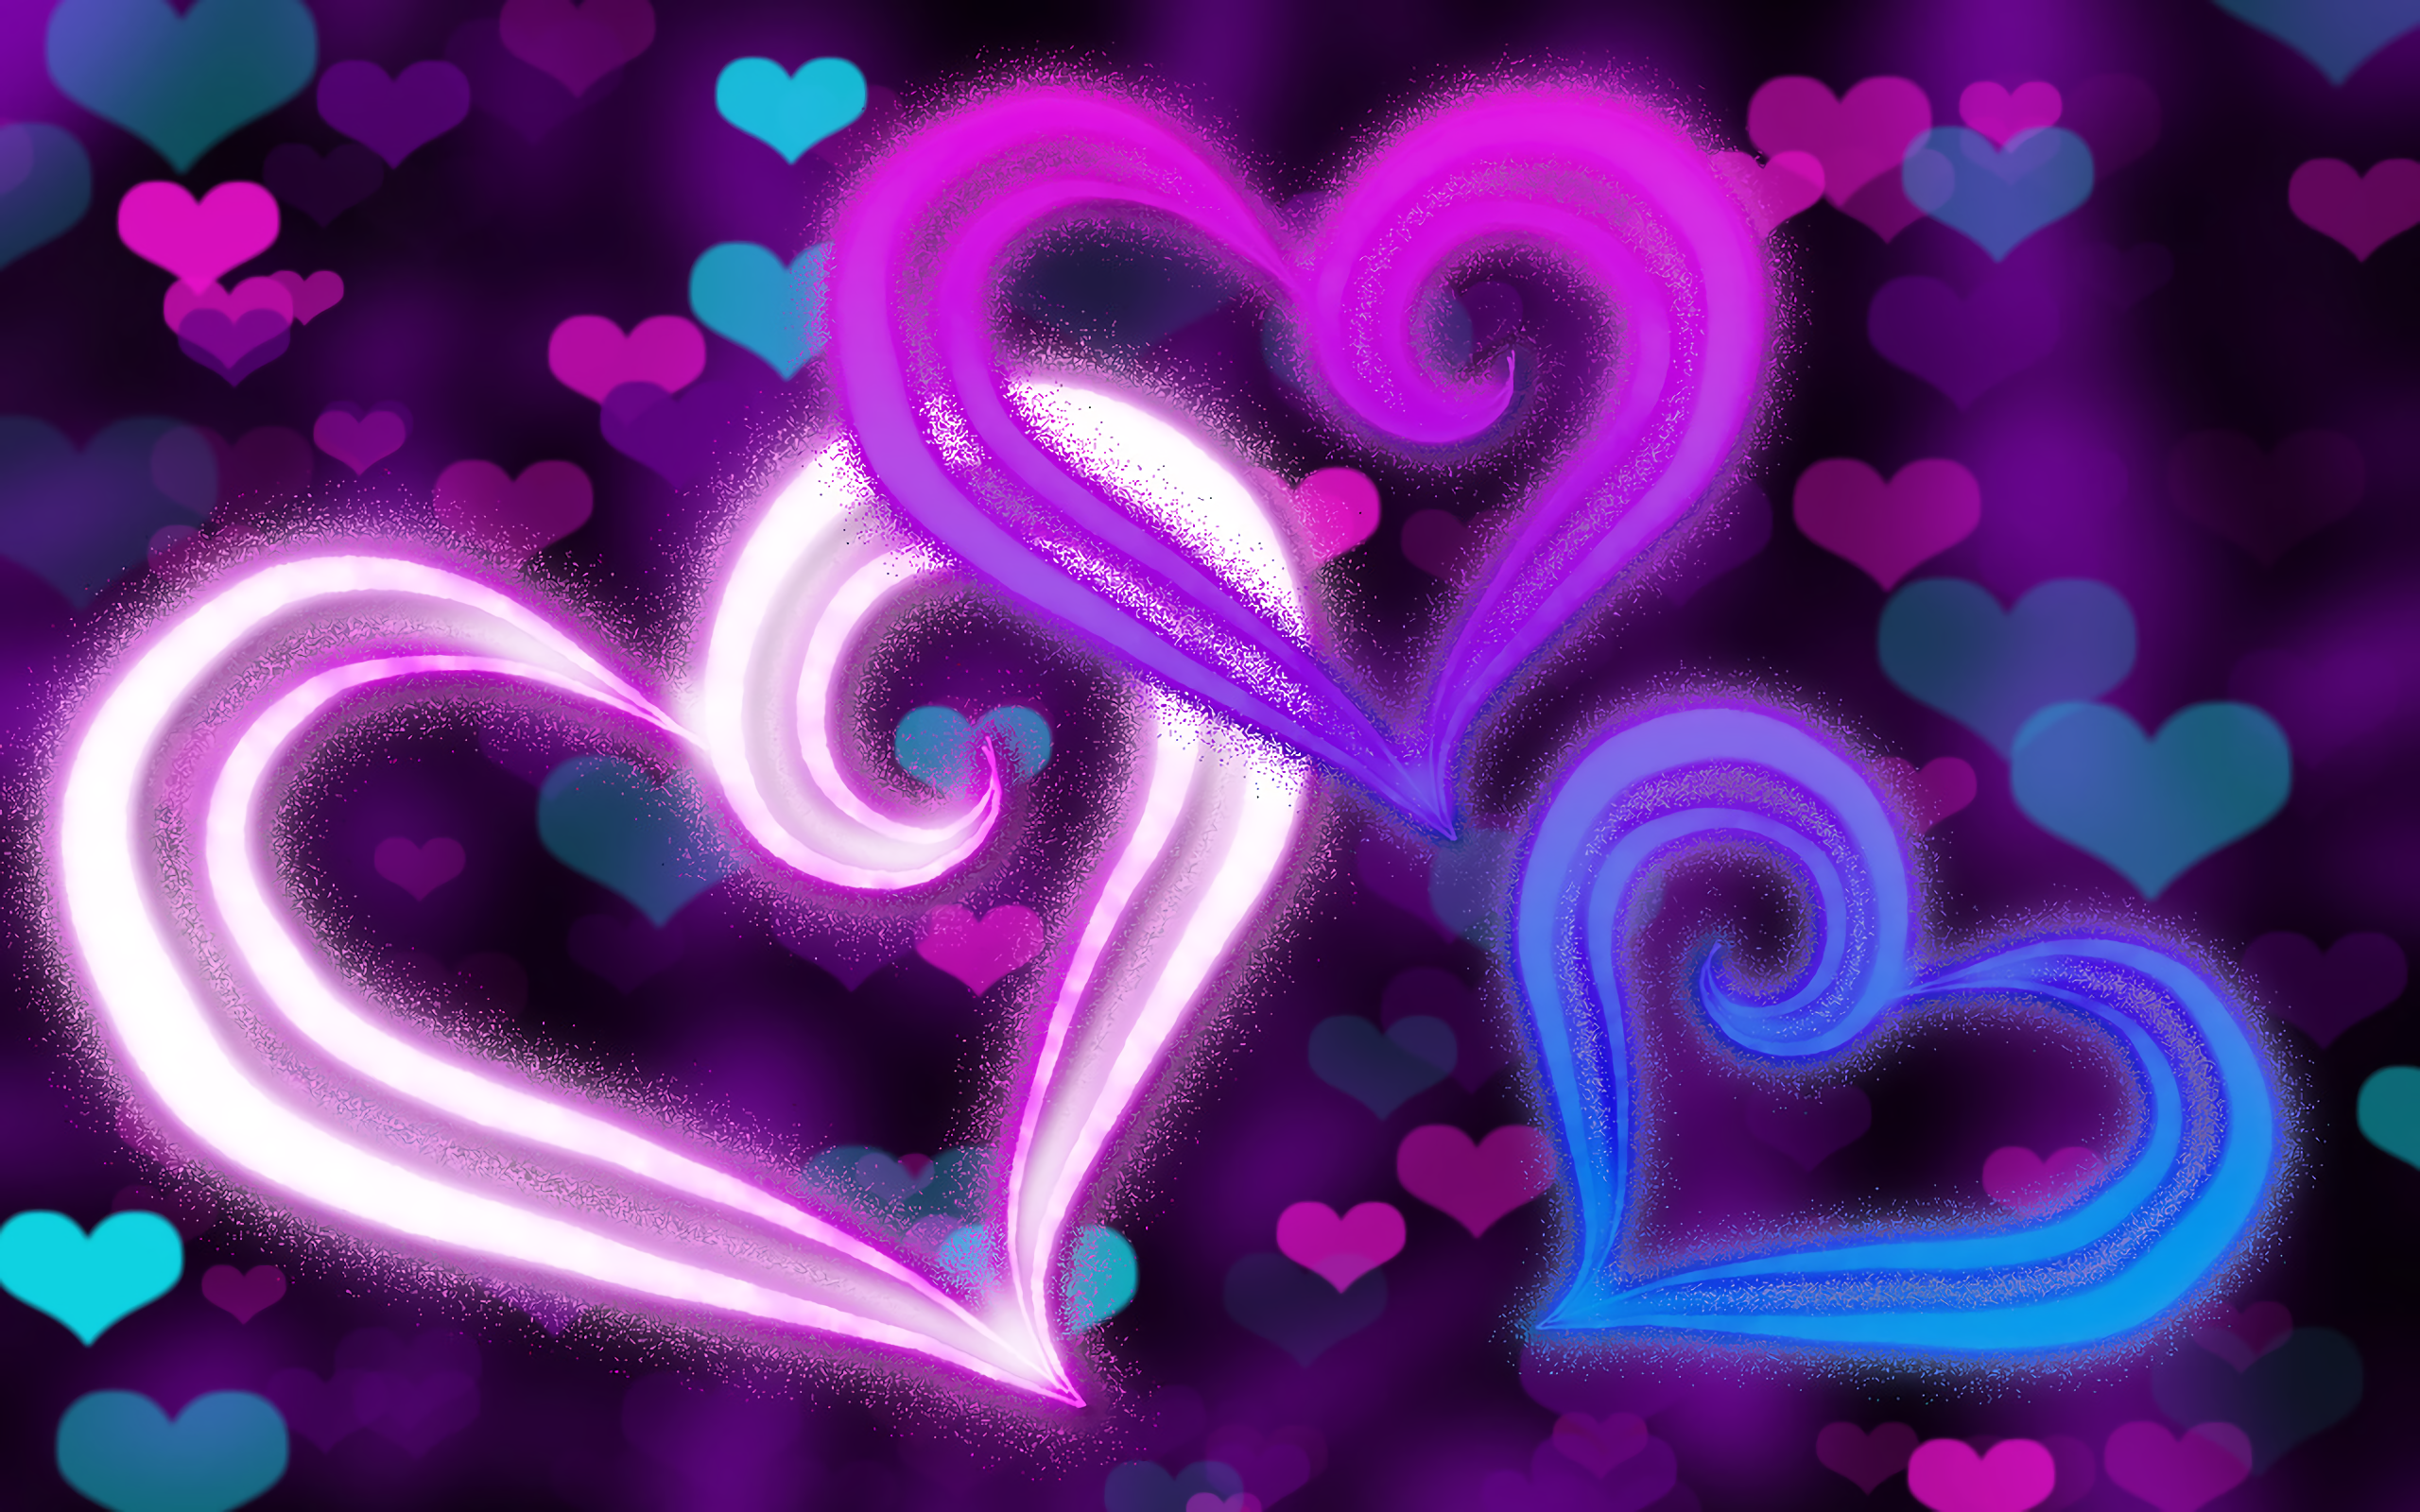 abstract hearts full hd wallpaper and background image | 2560x1600